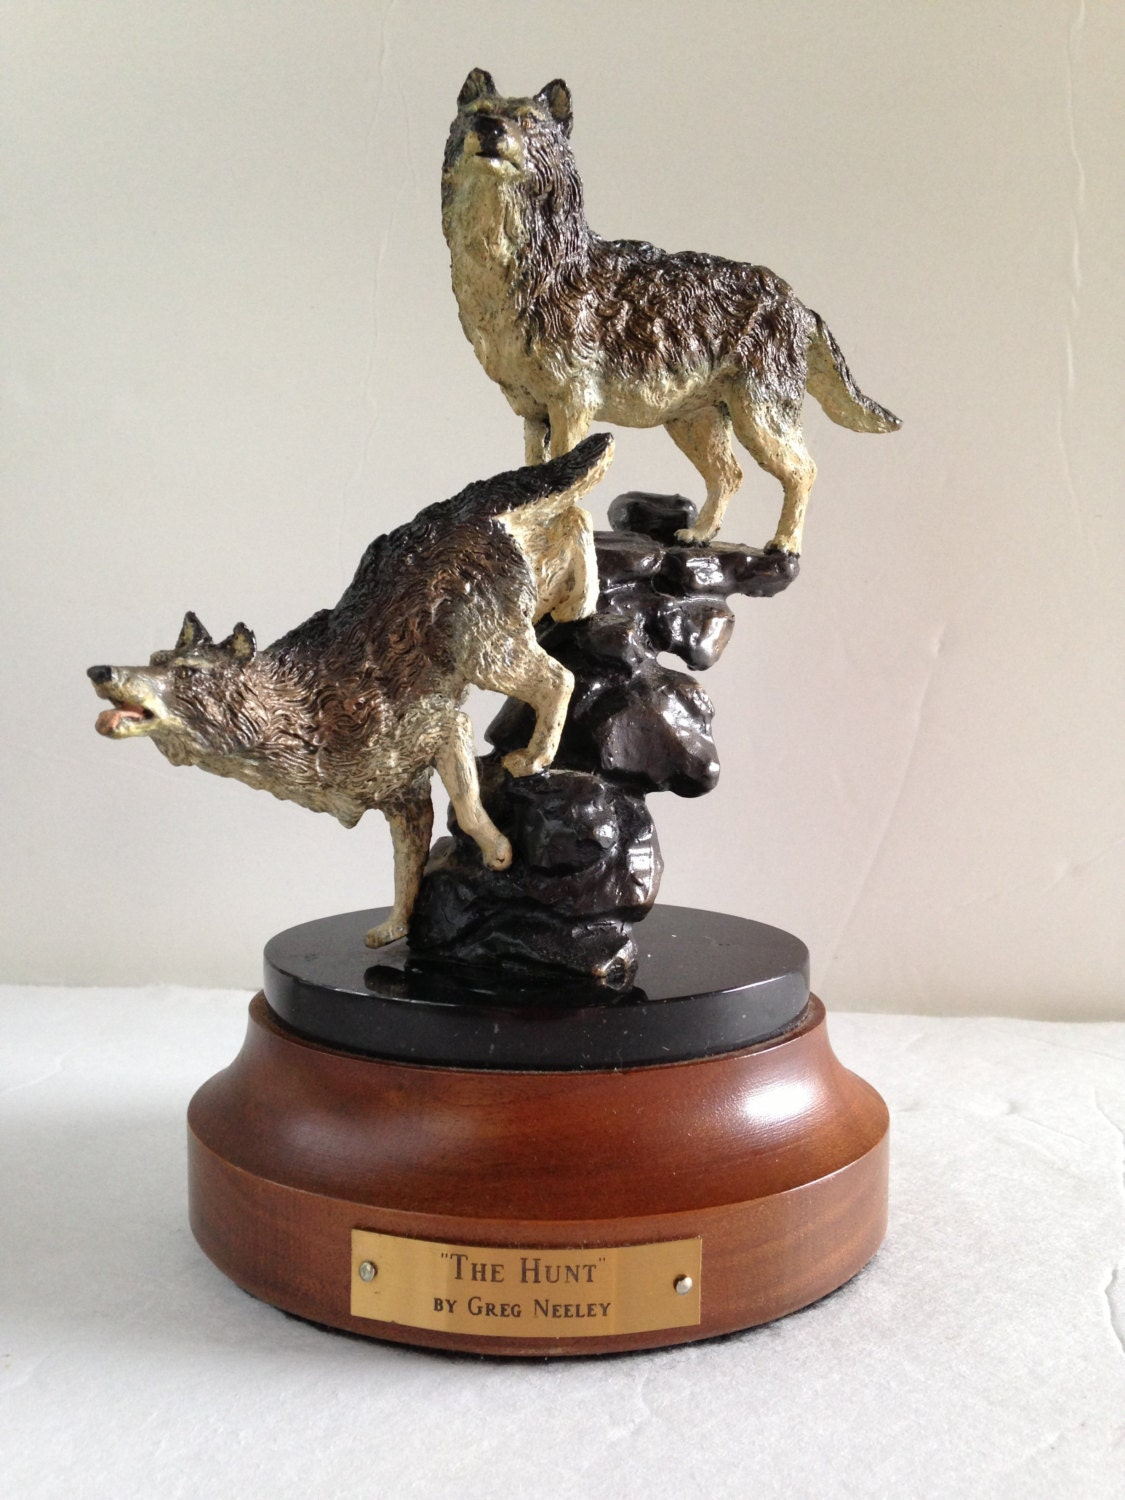 Greg neely the hunt wolf sculpture pewter metal